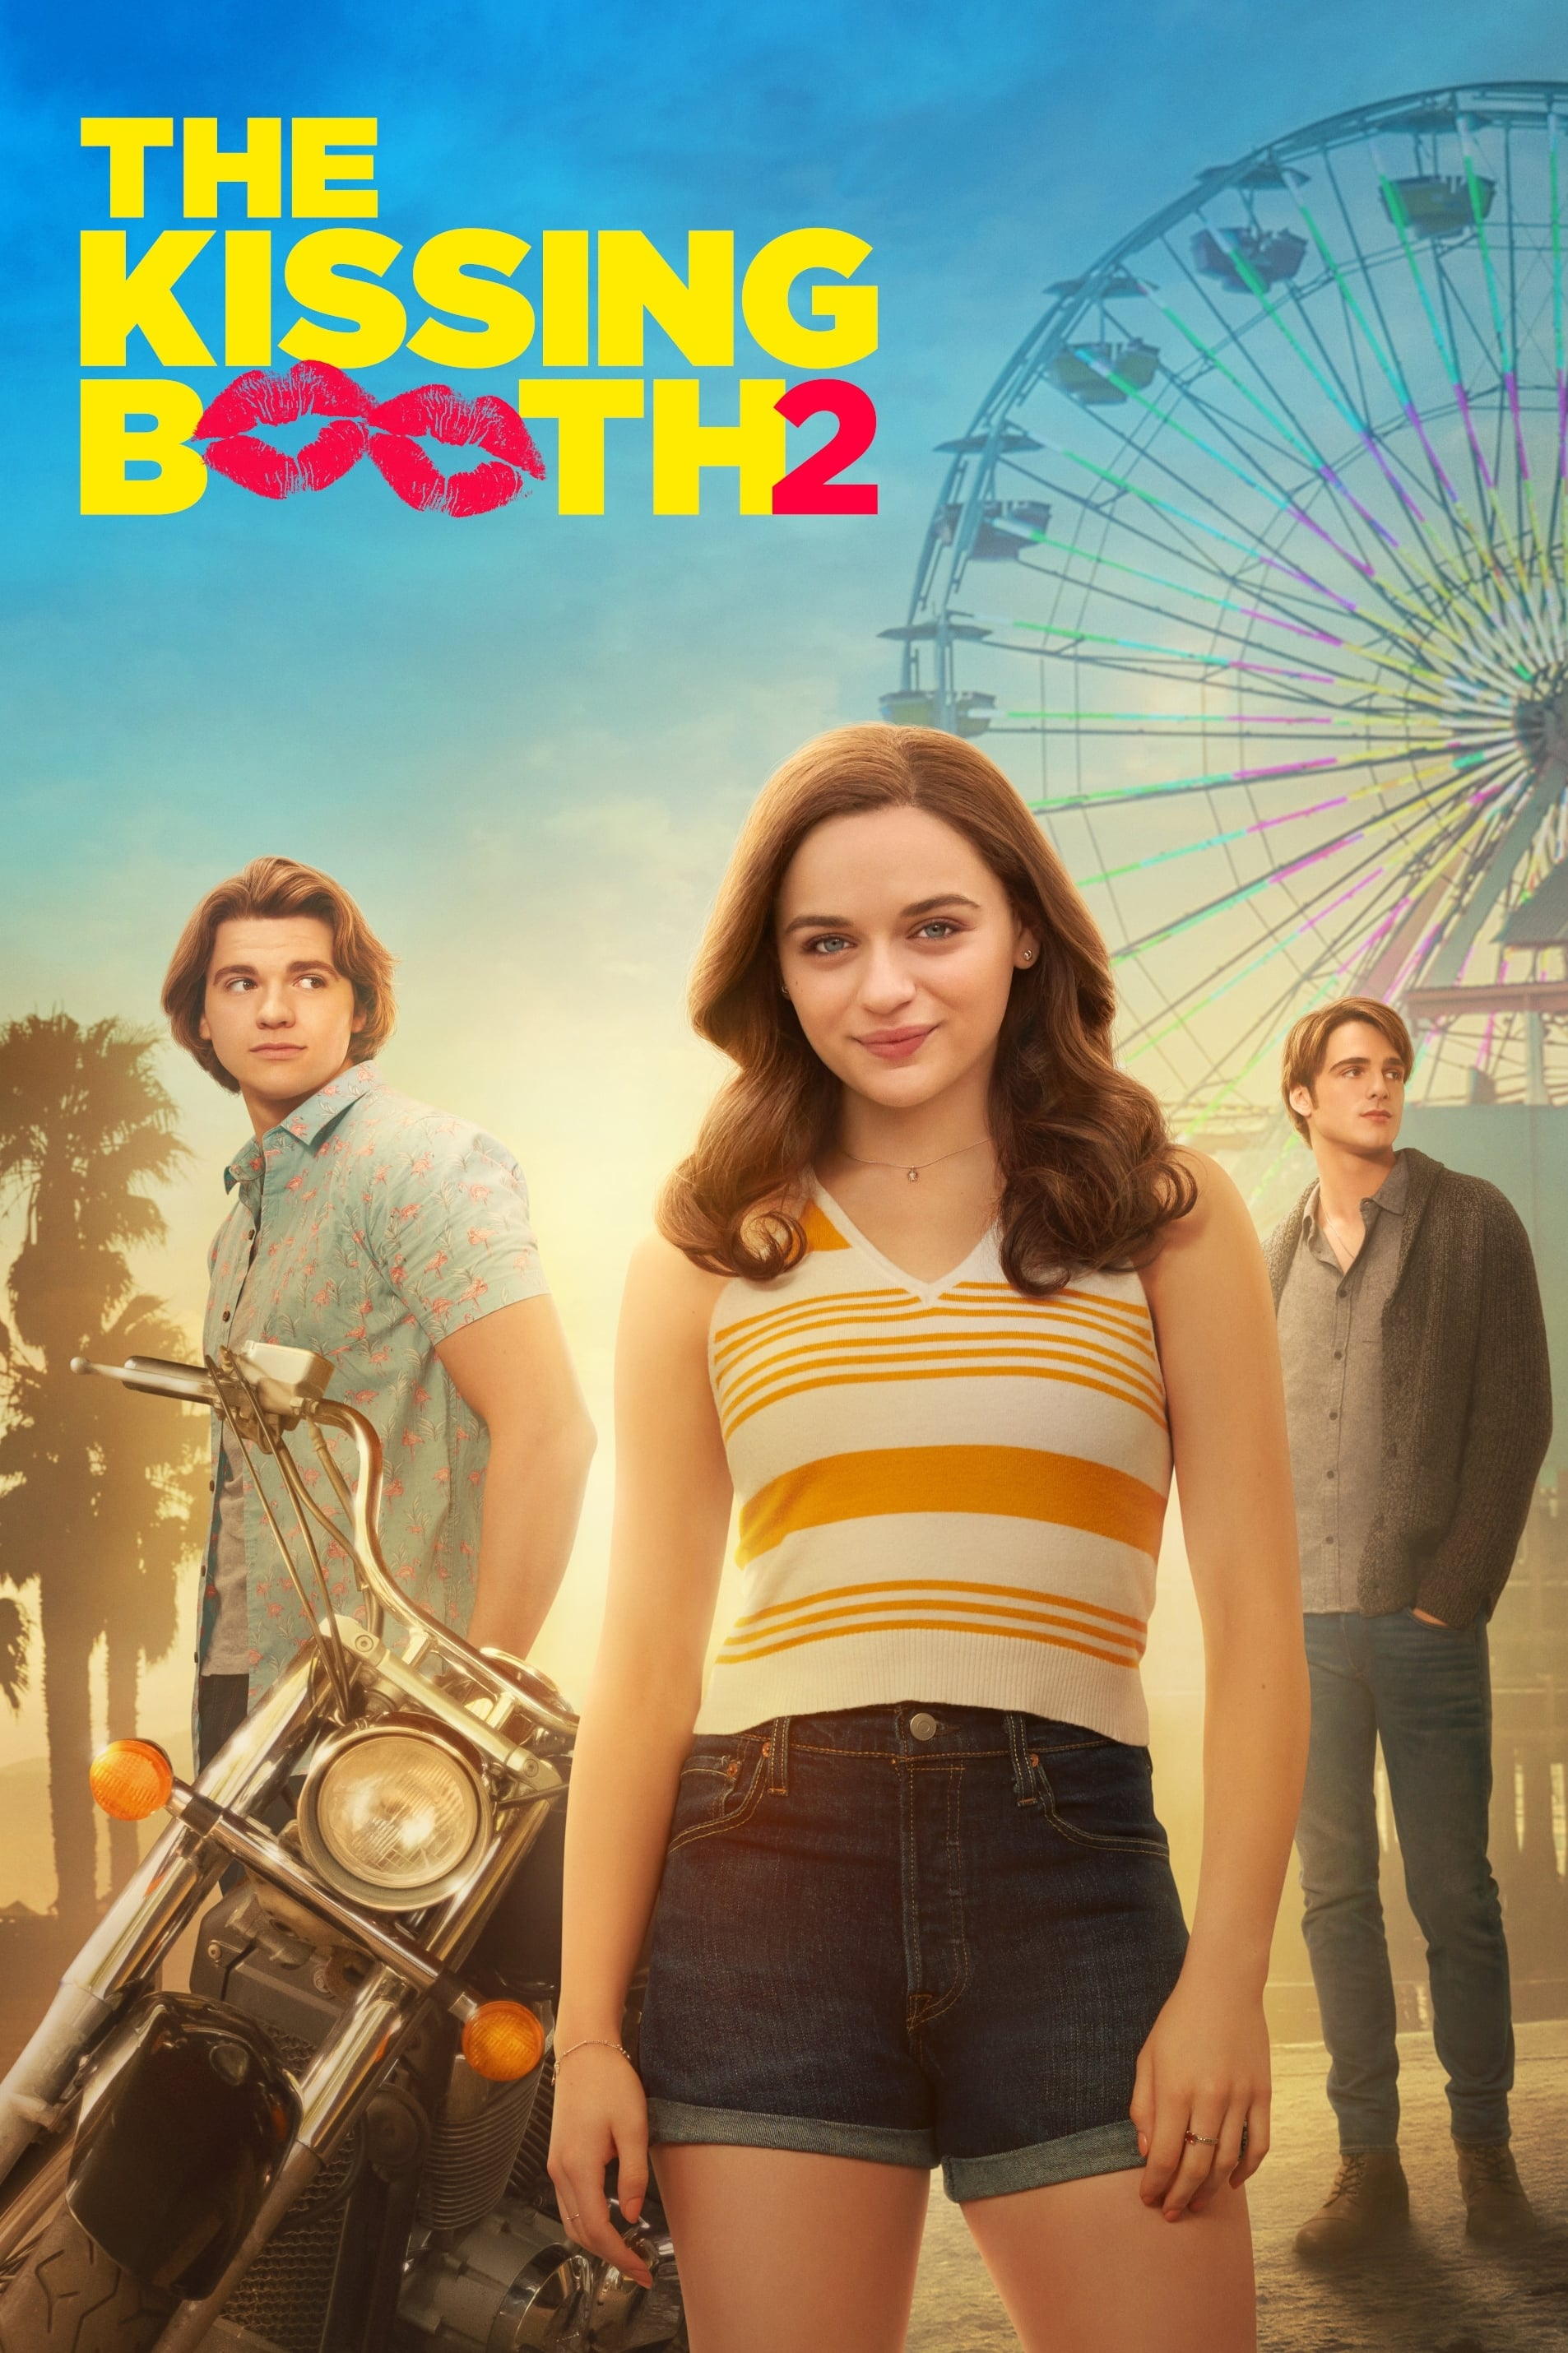 The Kissing Booth Streaming : kissing, booth, streaming, Kissing, Booth, CINEMABLEND